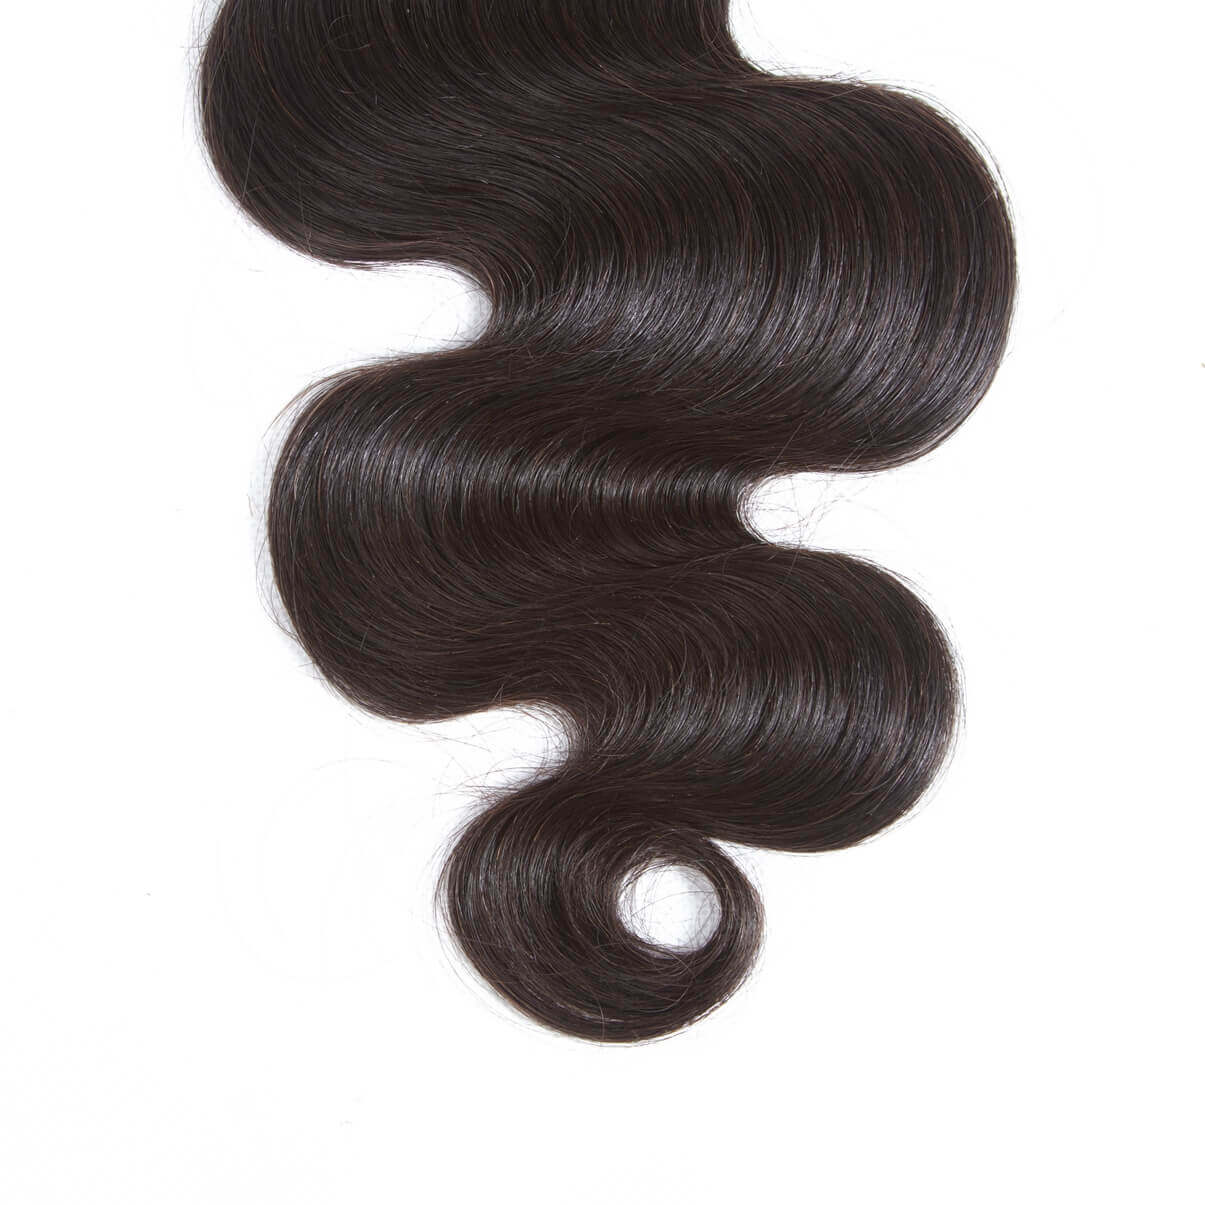 Lakihair 8A Lace Closure 4x4 Brazilian Unprocessed Virgin Human Hair Body Wave Closure